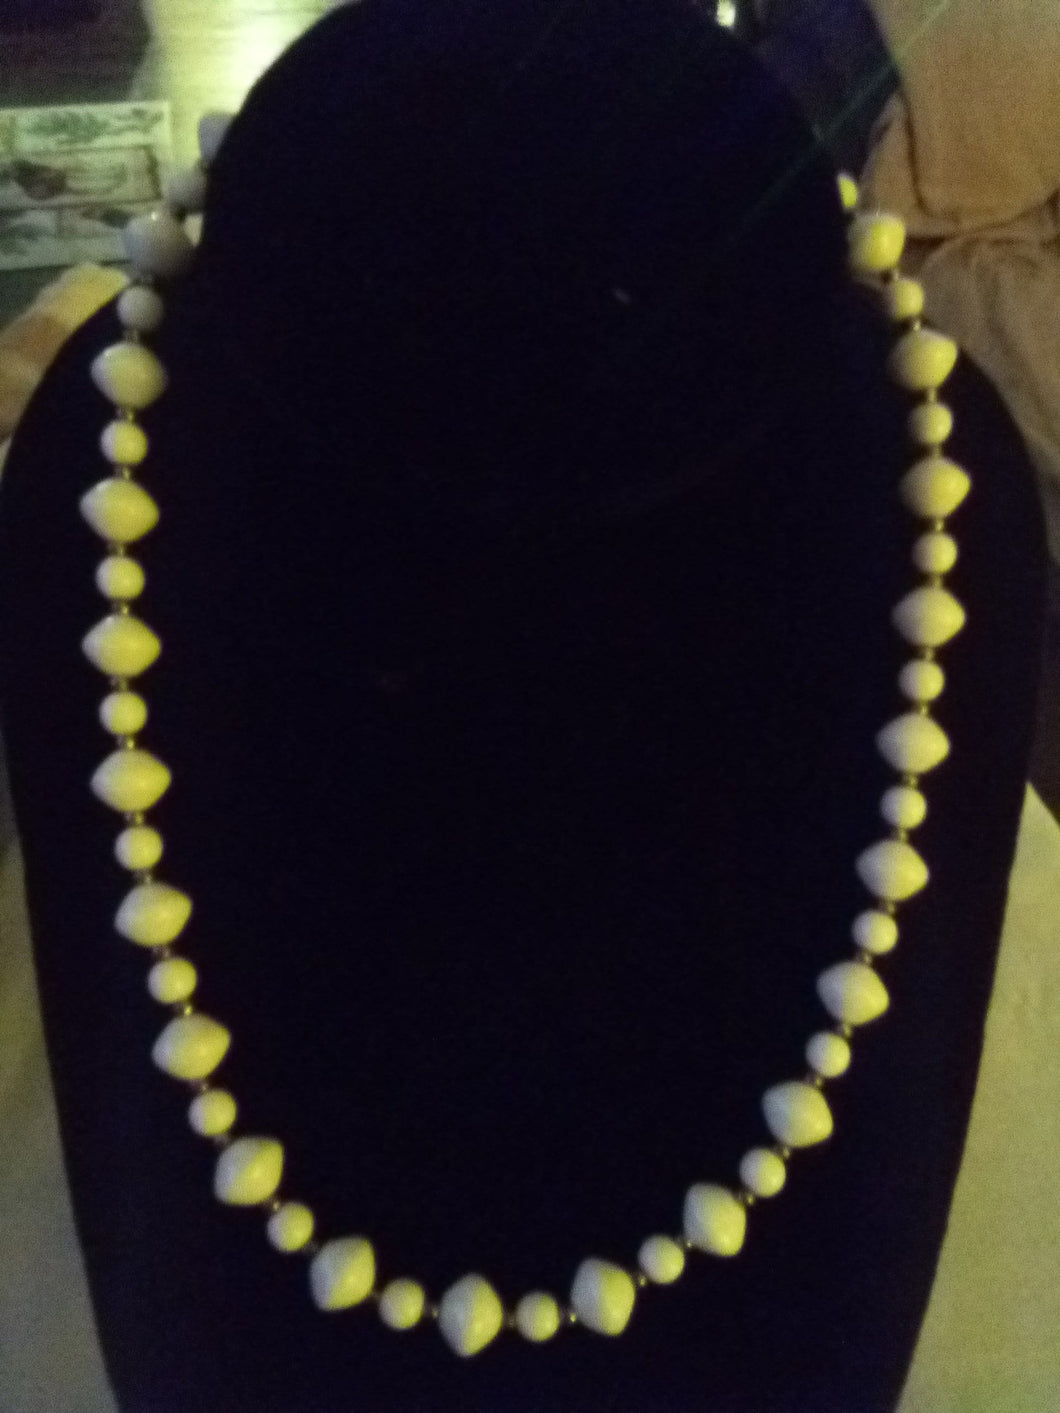 White beaded necklace - B&P'sringsnthings